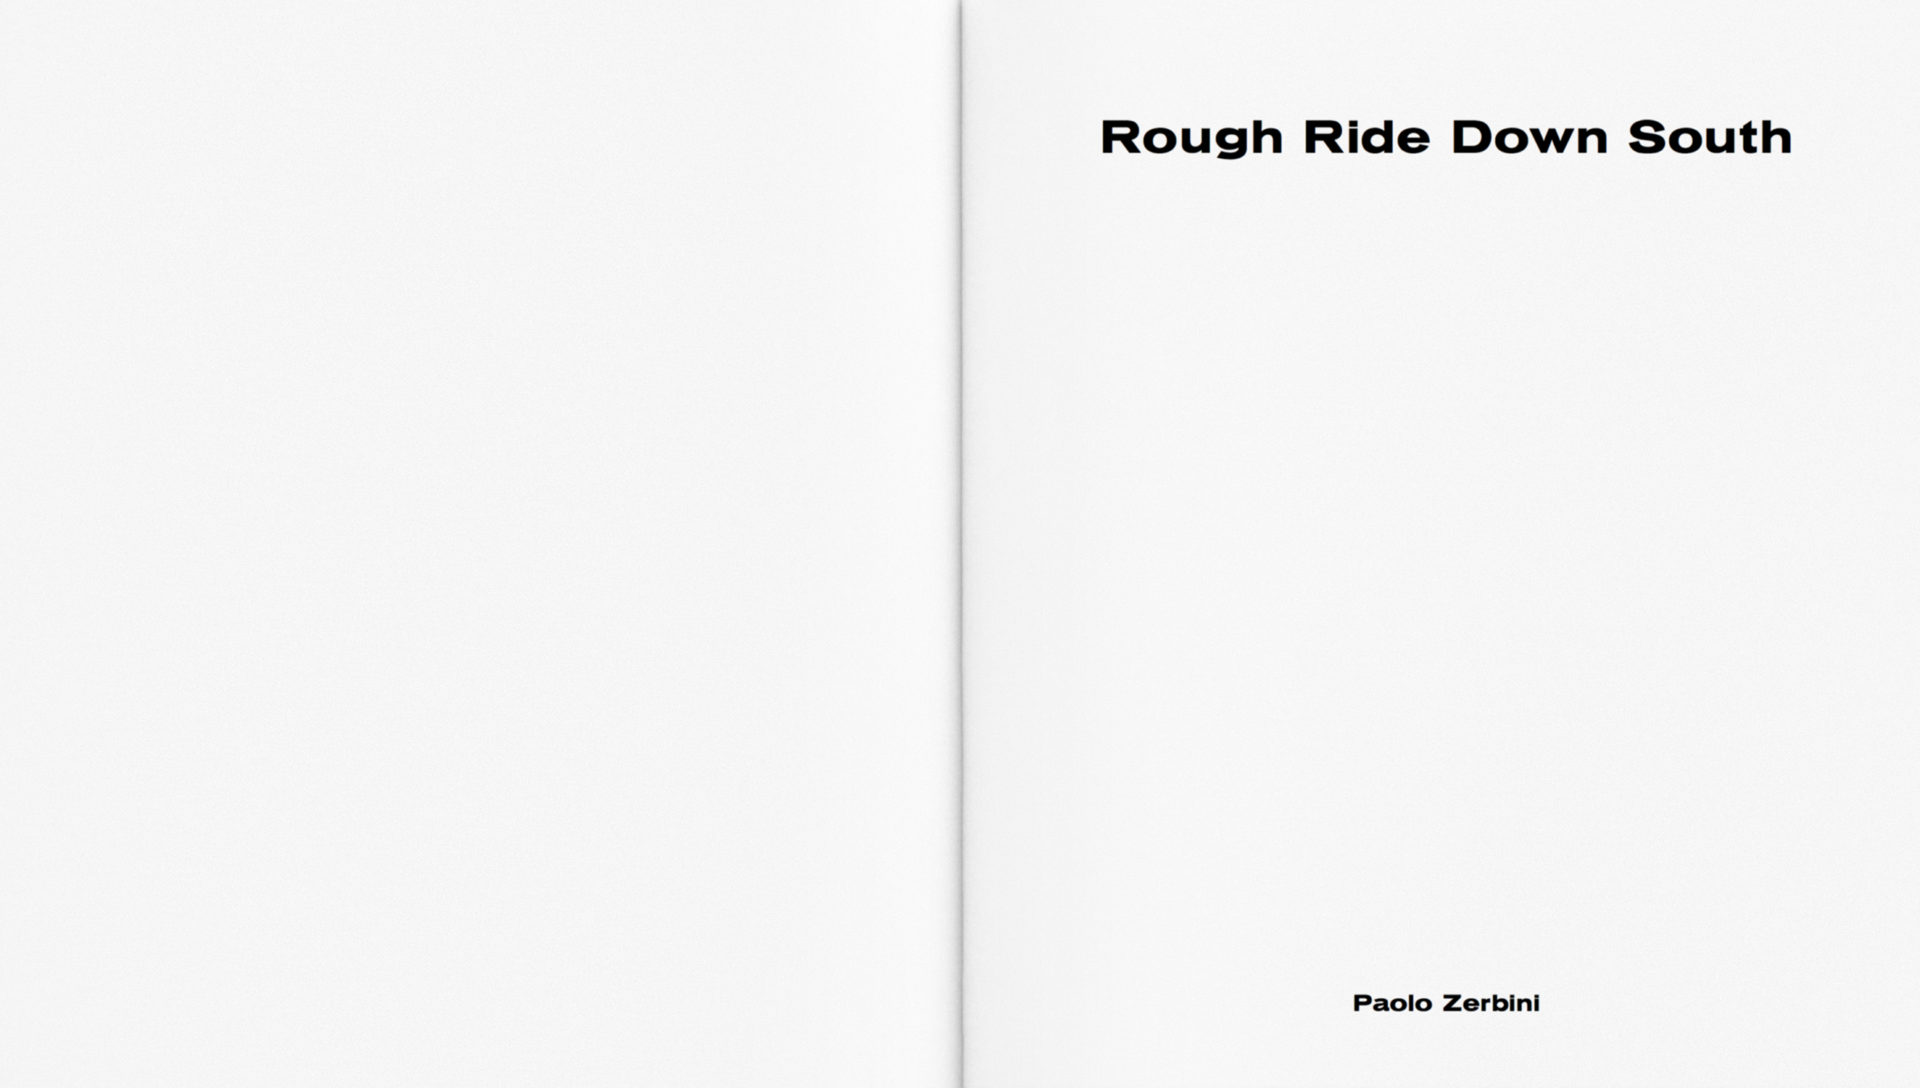 Carol Montpart Studio - Rough Ride Down South